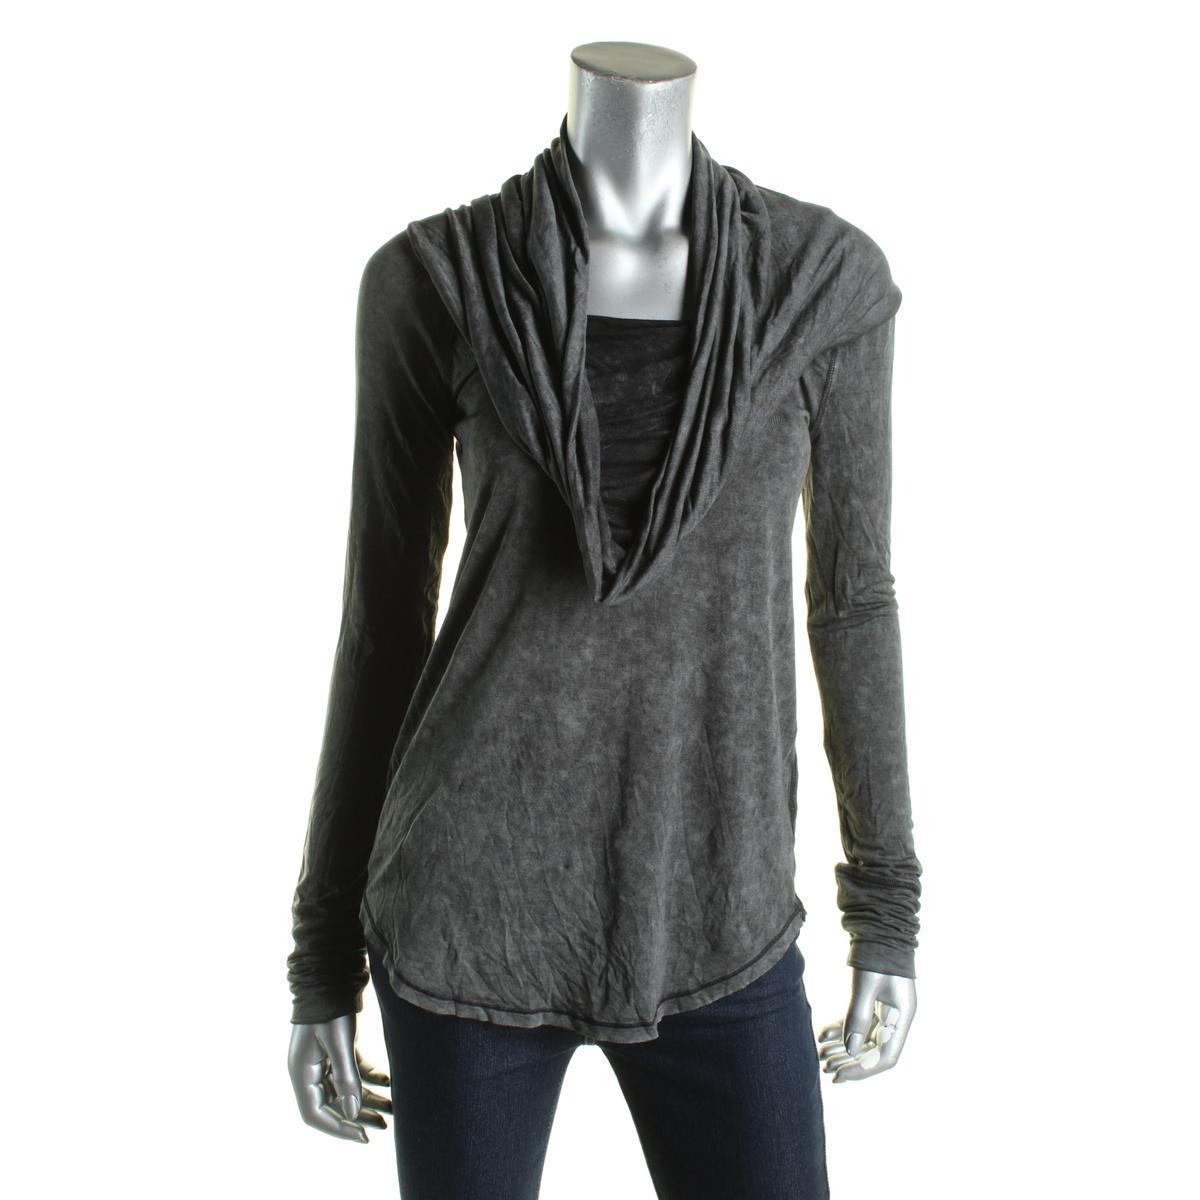 Free People Womens BLACK/GRAY Cowl Neck Long Sleeve Knit Casual Top Shirt Small